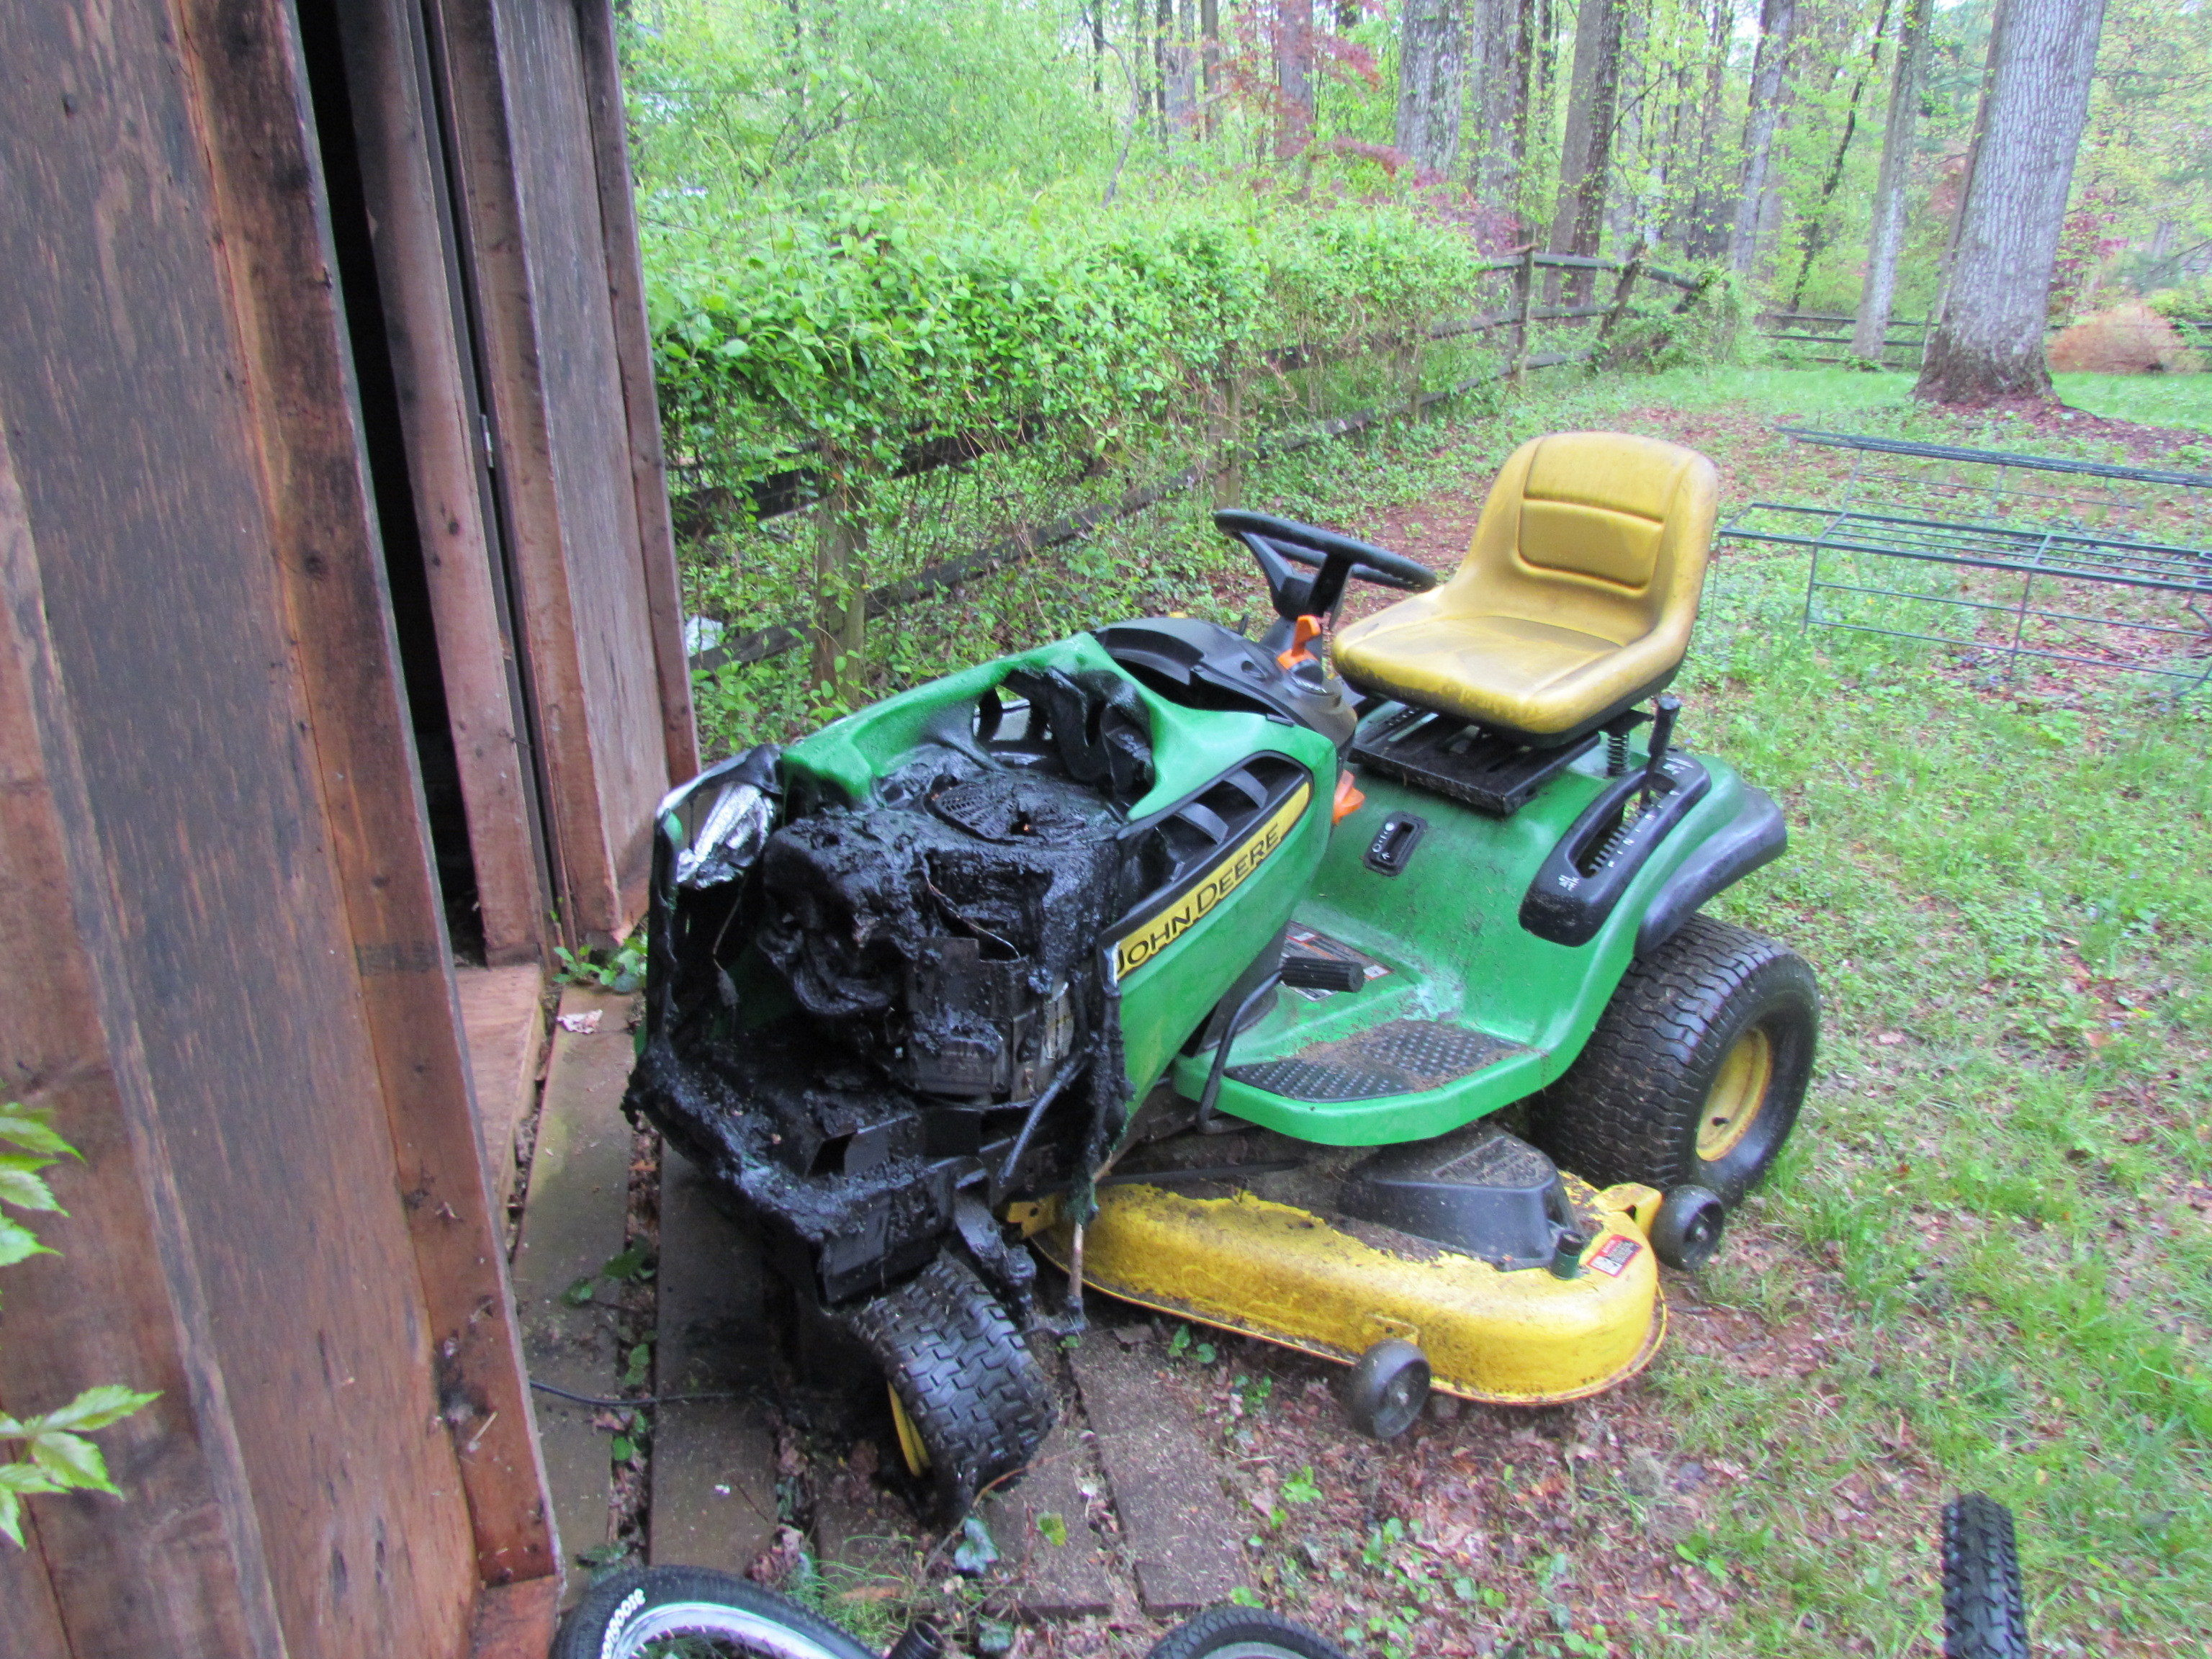 John Deere 140 Parts Diagram Trusted Wiring D140 Aftermarket Attachments Riding Mower